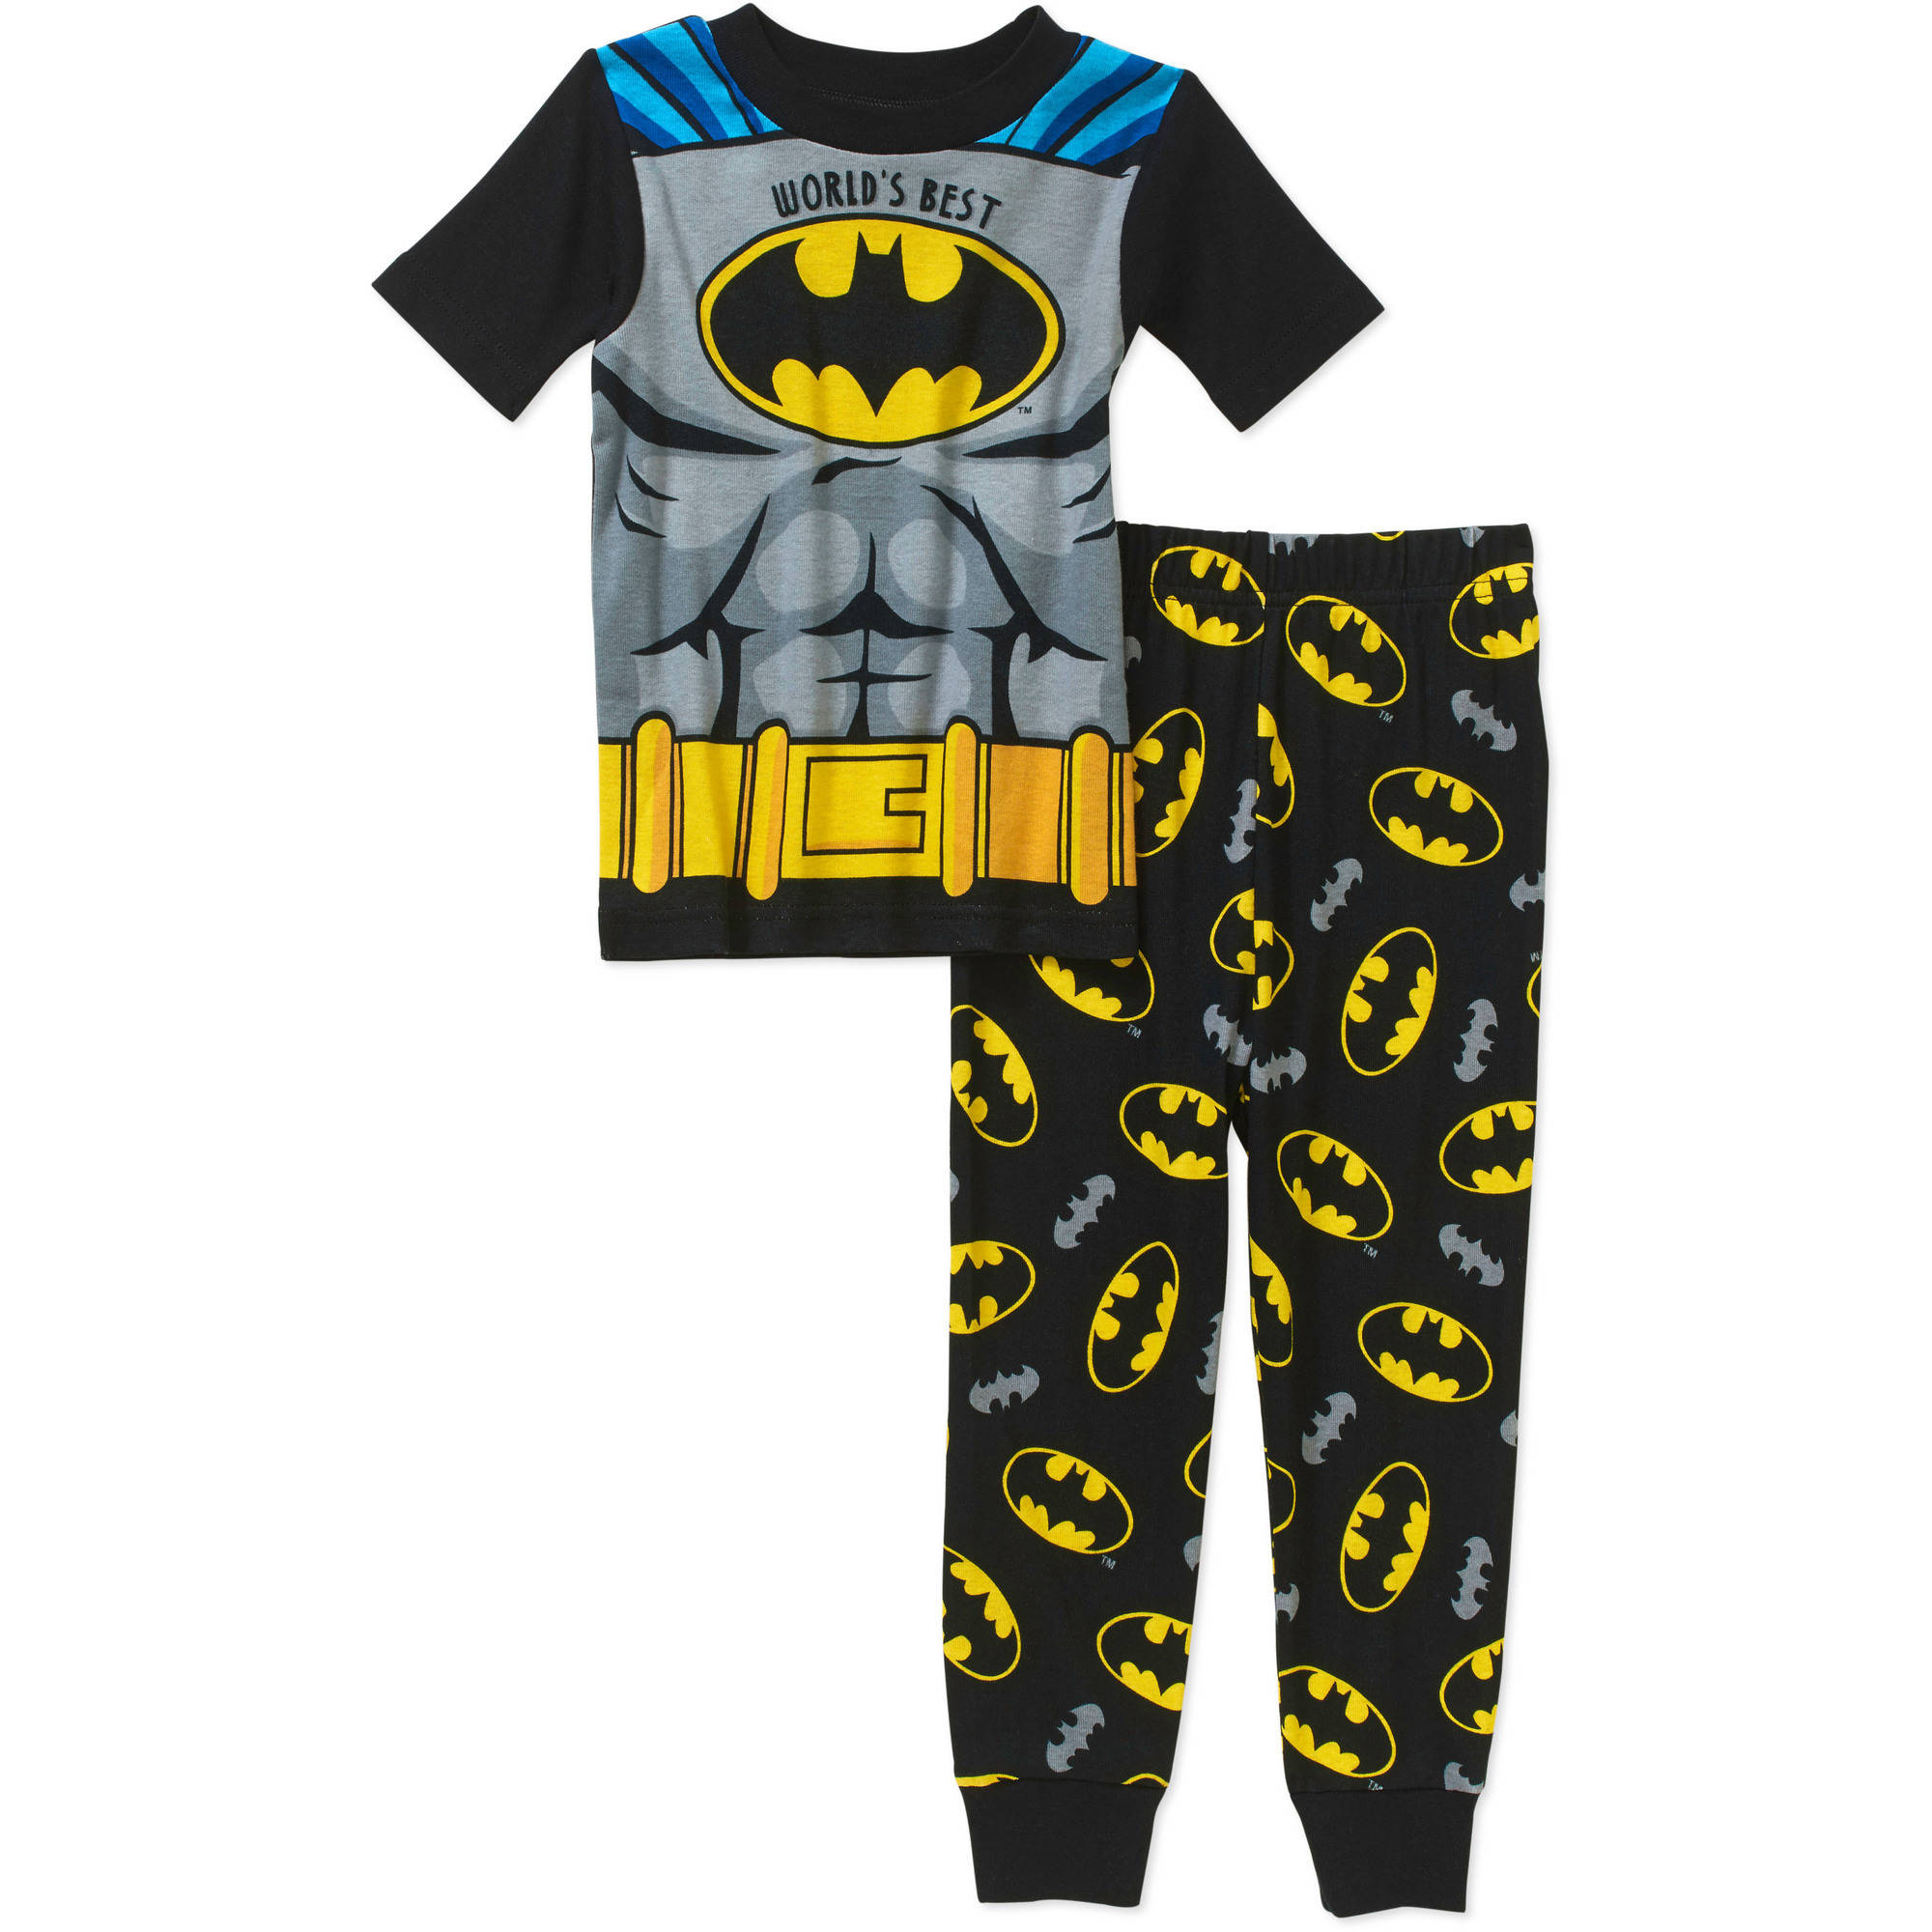 Batman Toddler Boy Licensed Cotton Pajama Sleepwear Set